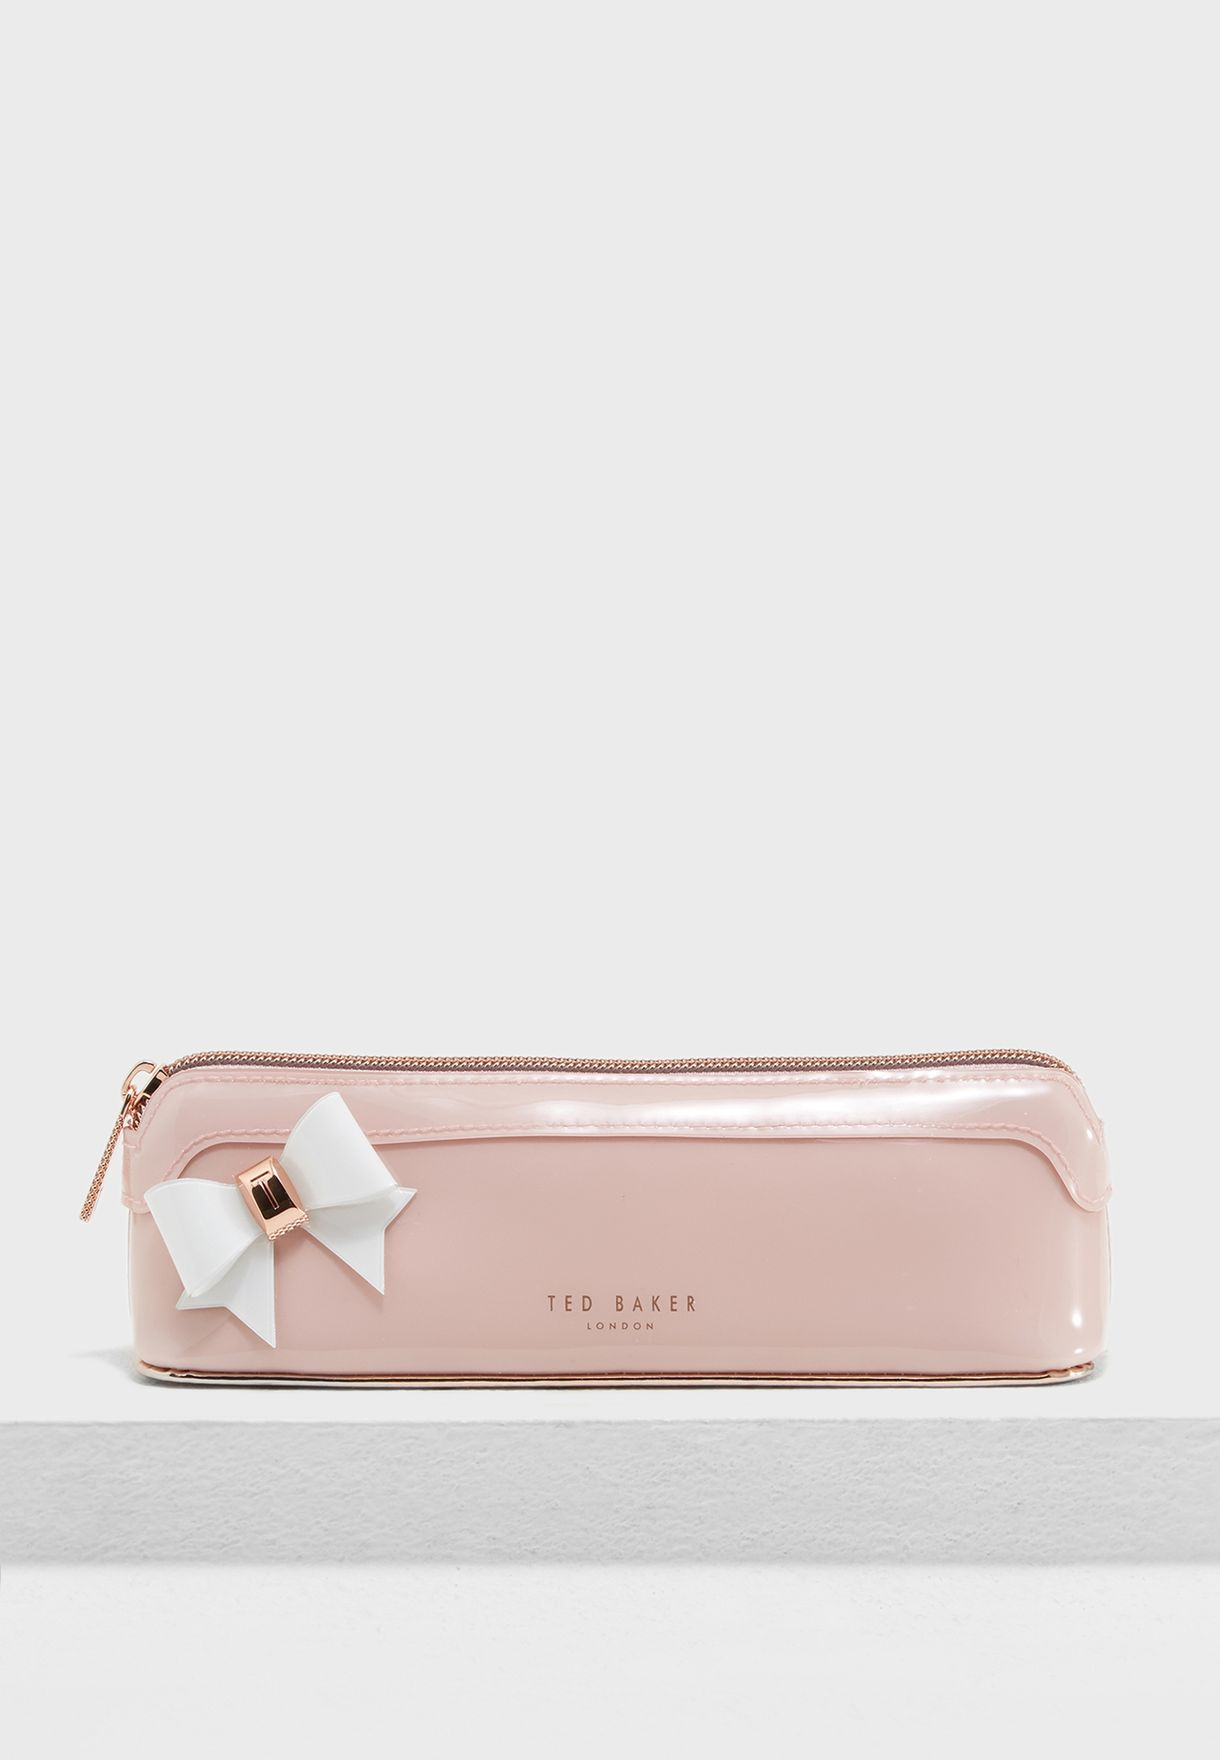 0d4642f01412 Shop Ted baker pink Bow Pencil Case 146589 for Women in UAE ...